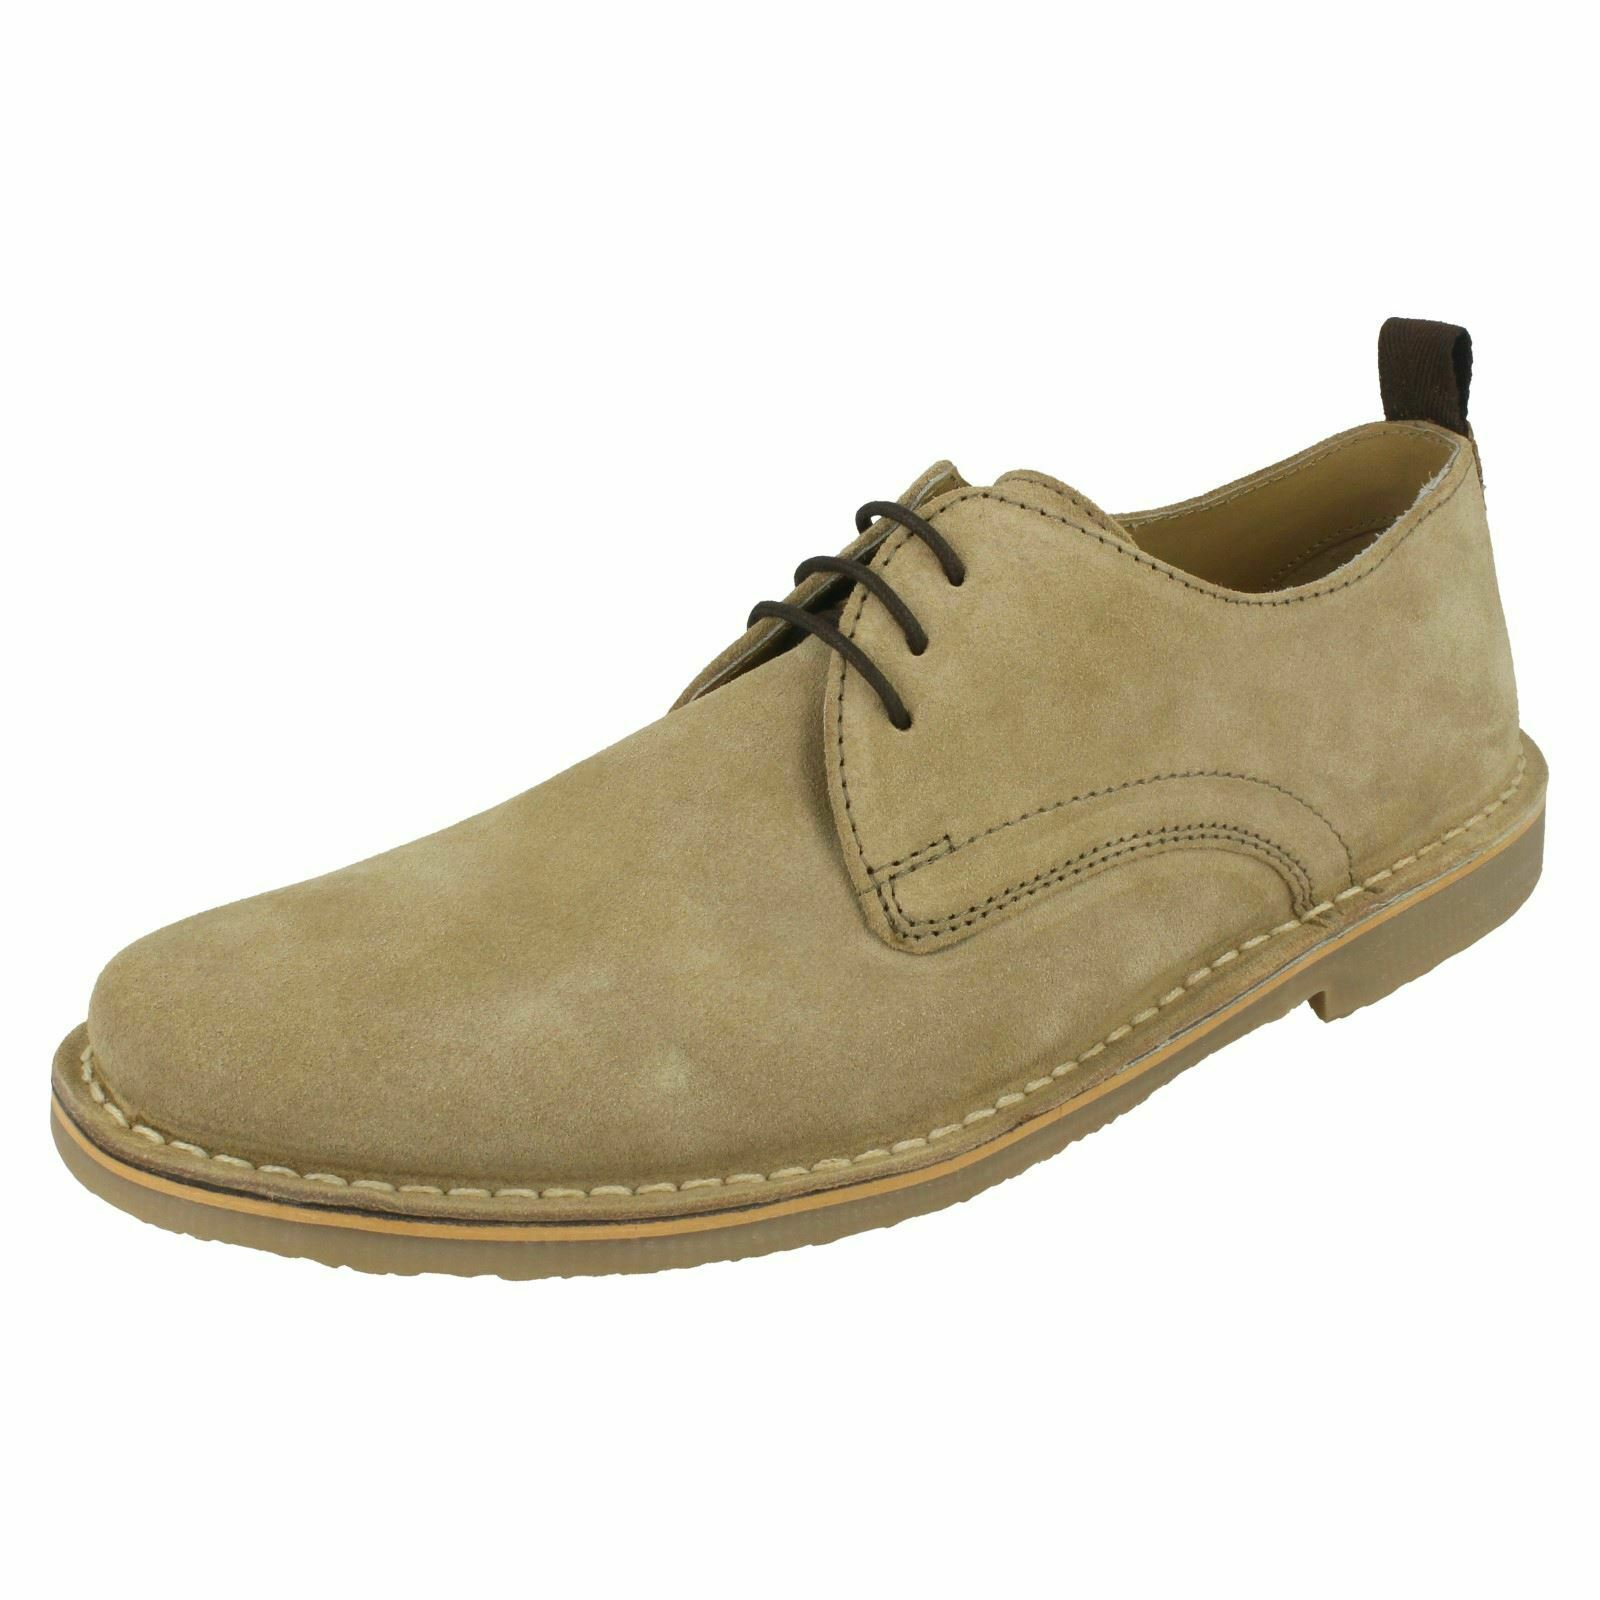 'Mens Ikon' Smart Casual Lace Up shoes - Benjamin